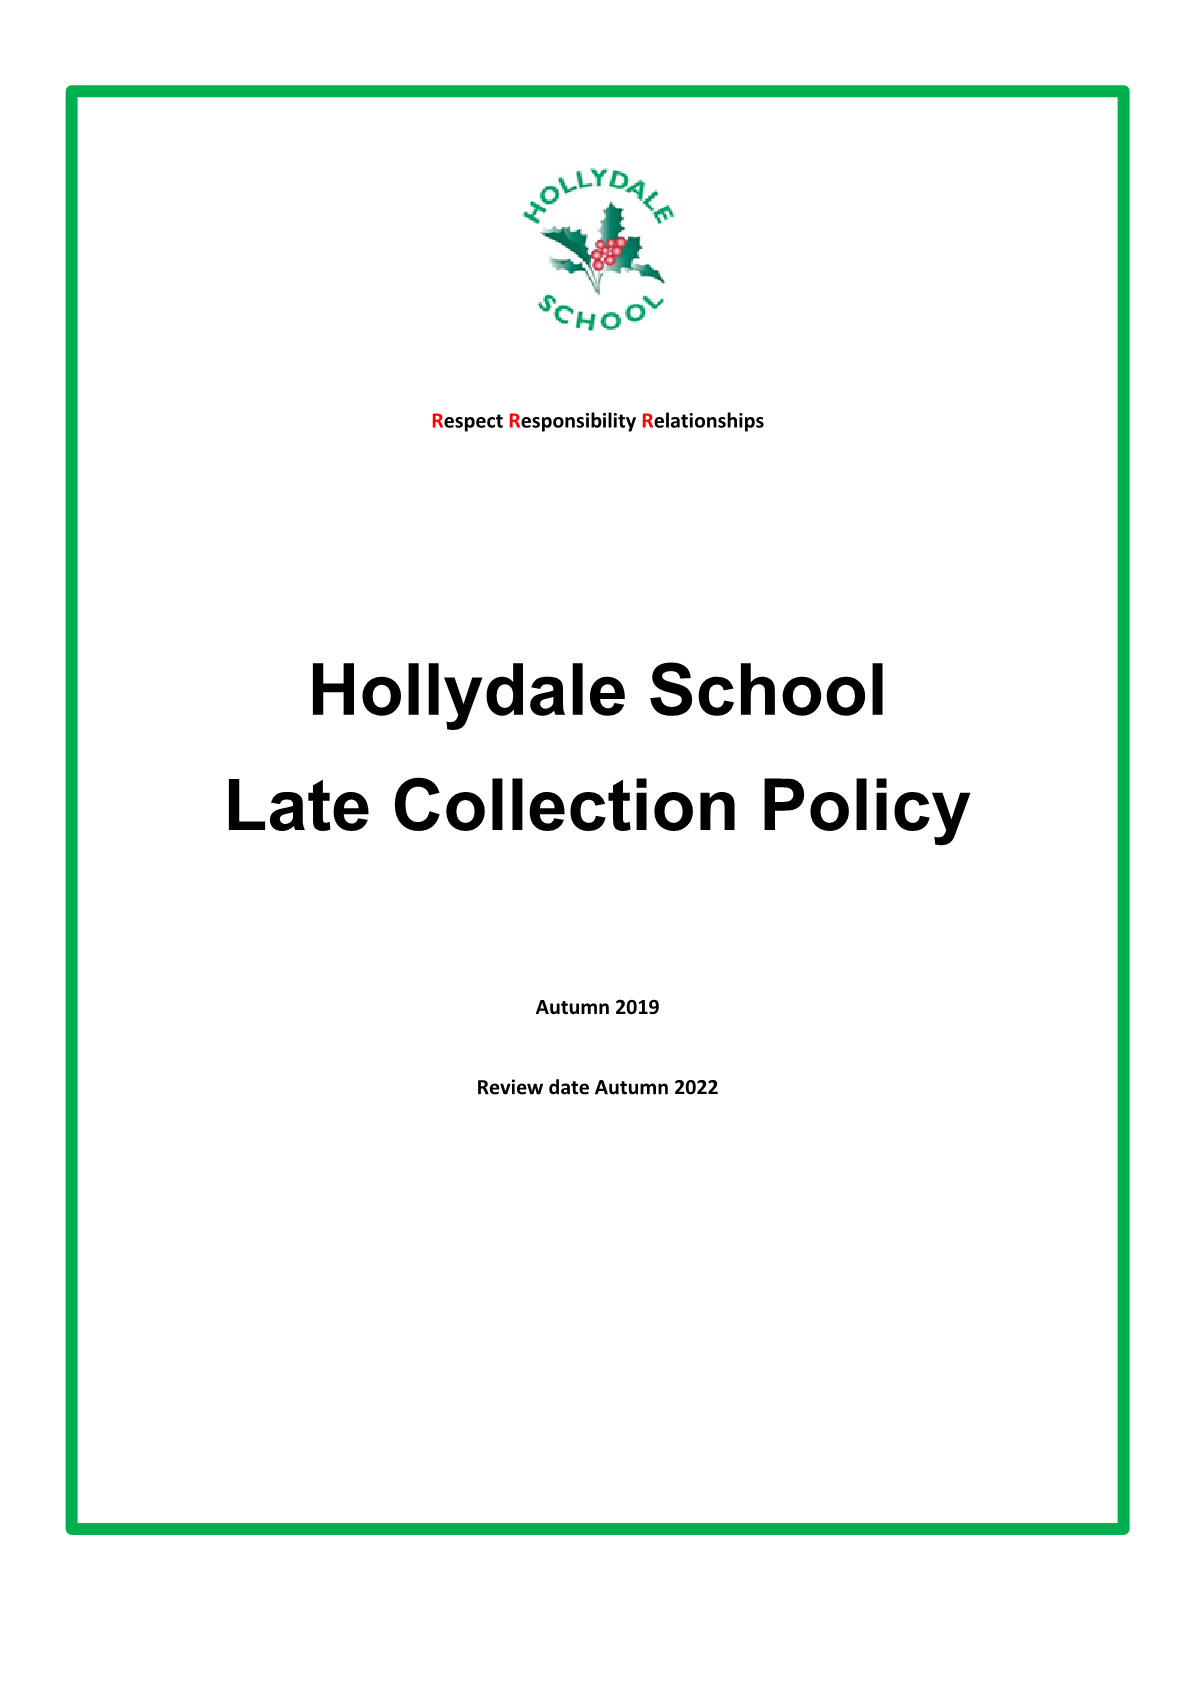 Late Collection Policy